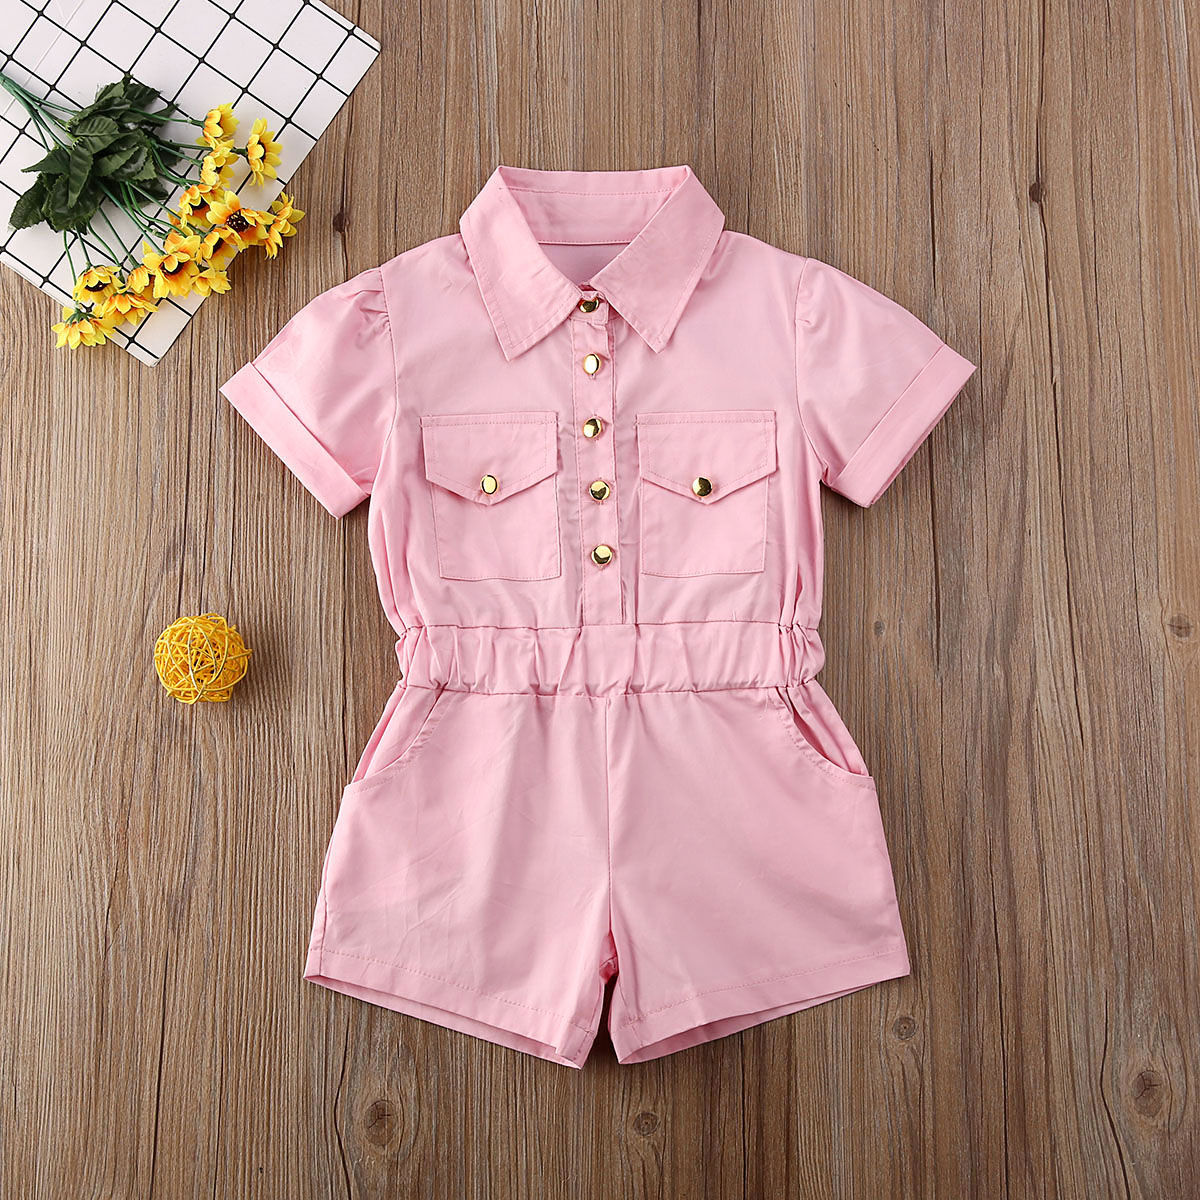 Pudcoco Toddler Baby Girl Clothes Solid Color Short Sleeve Button Romper Jumpsuit One-Piece Outfit Overalls Sunsuit Clothes